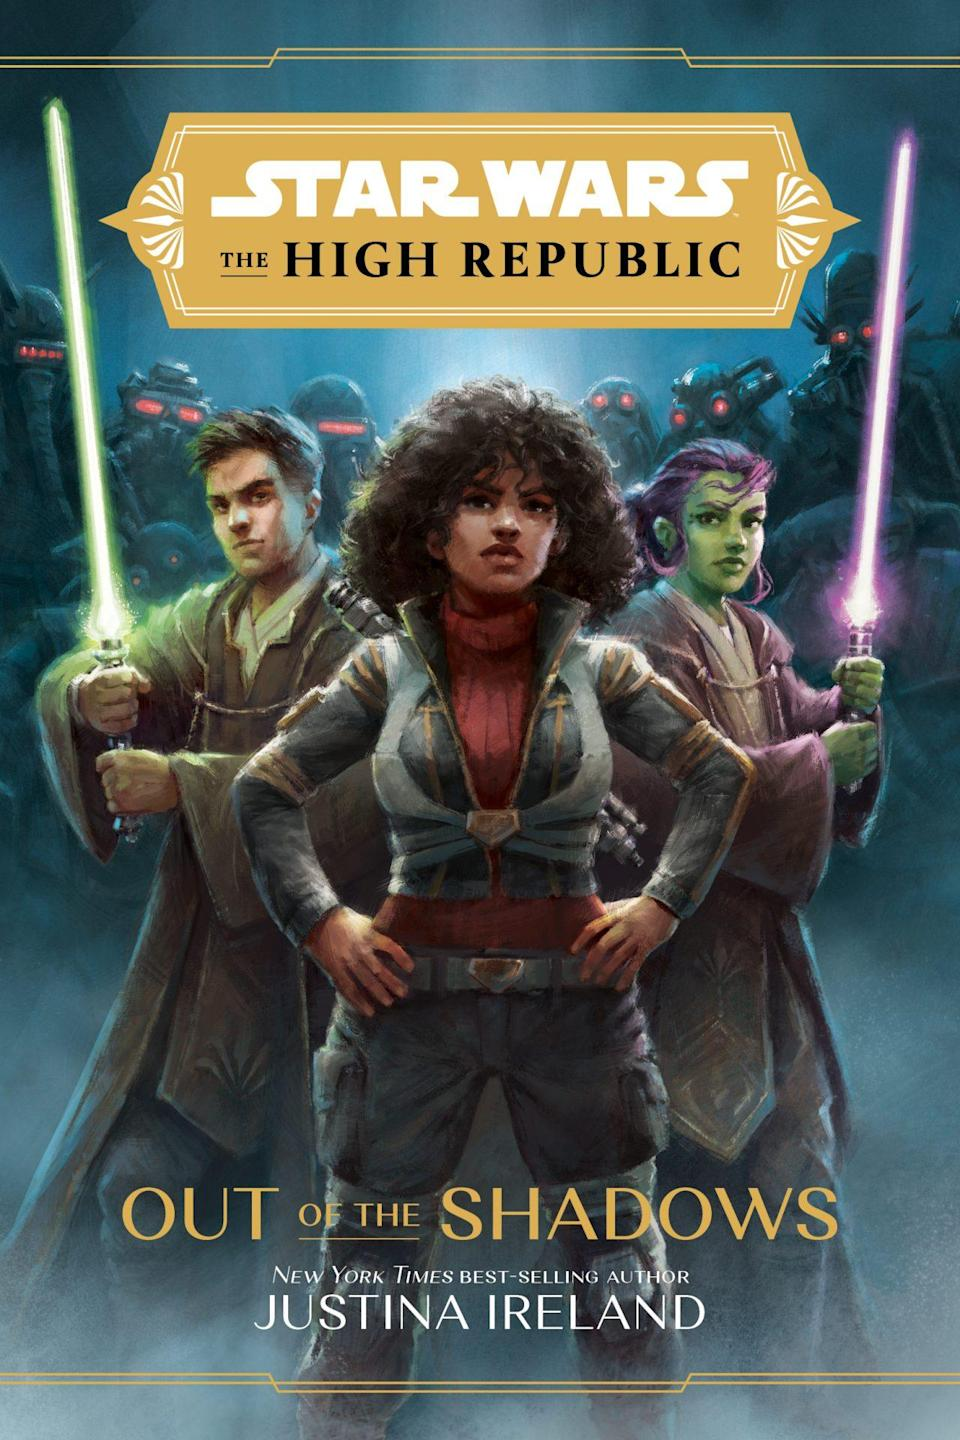 The illustrated cover of Star Wars: The High Republic Out of the Shadows depicting a human and alien holding lightsabers on either side of a young Black woman